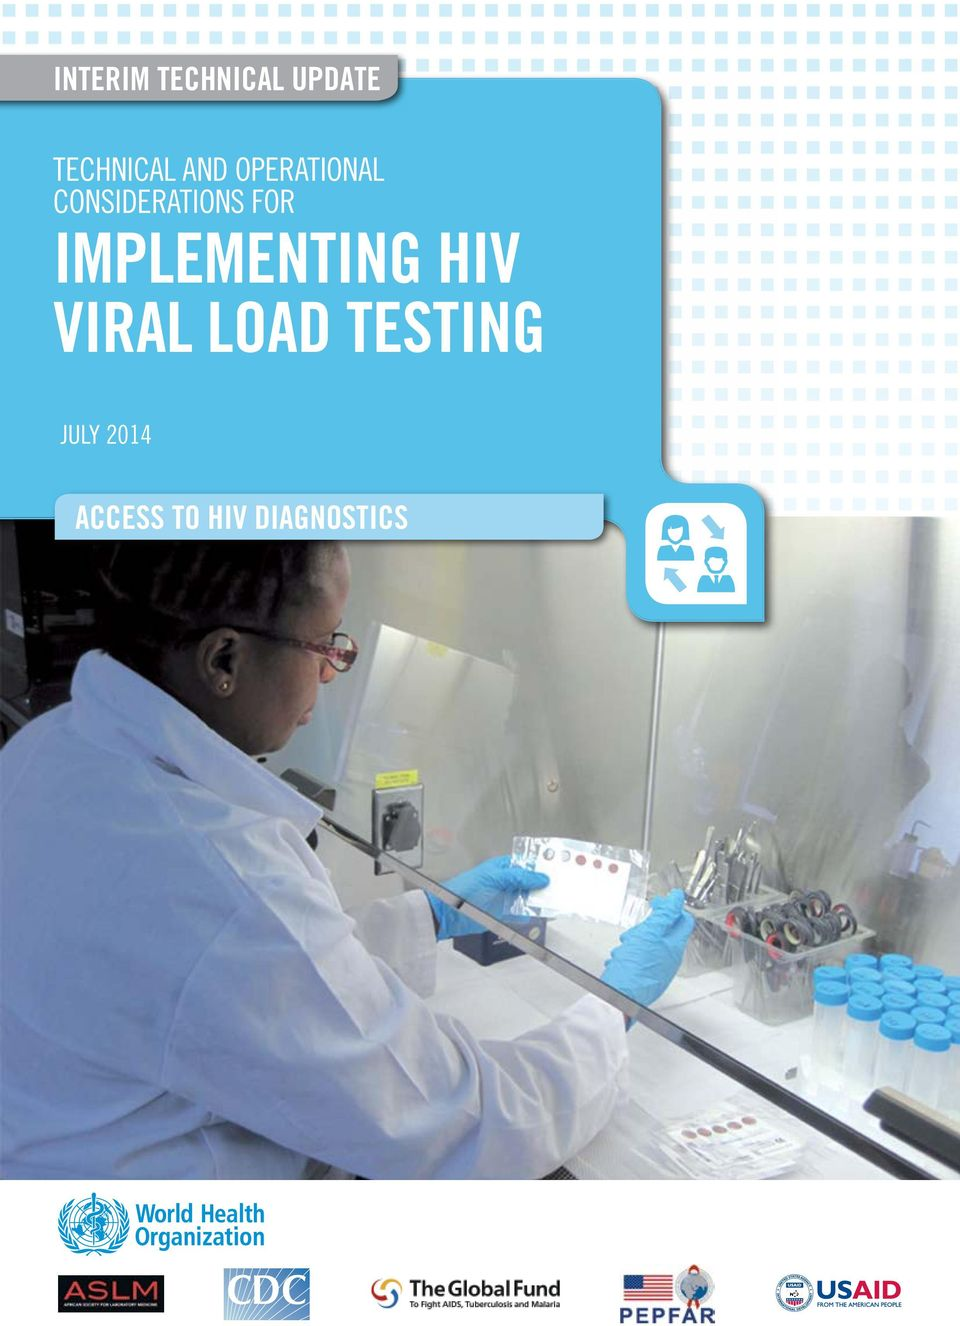 IMPLEMENTING HIV VIRAL LOAD TESTING